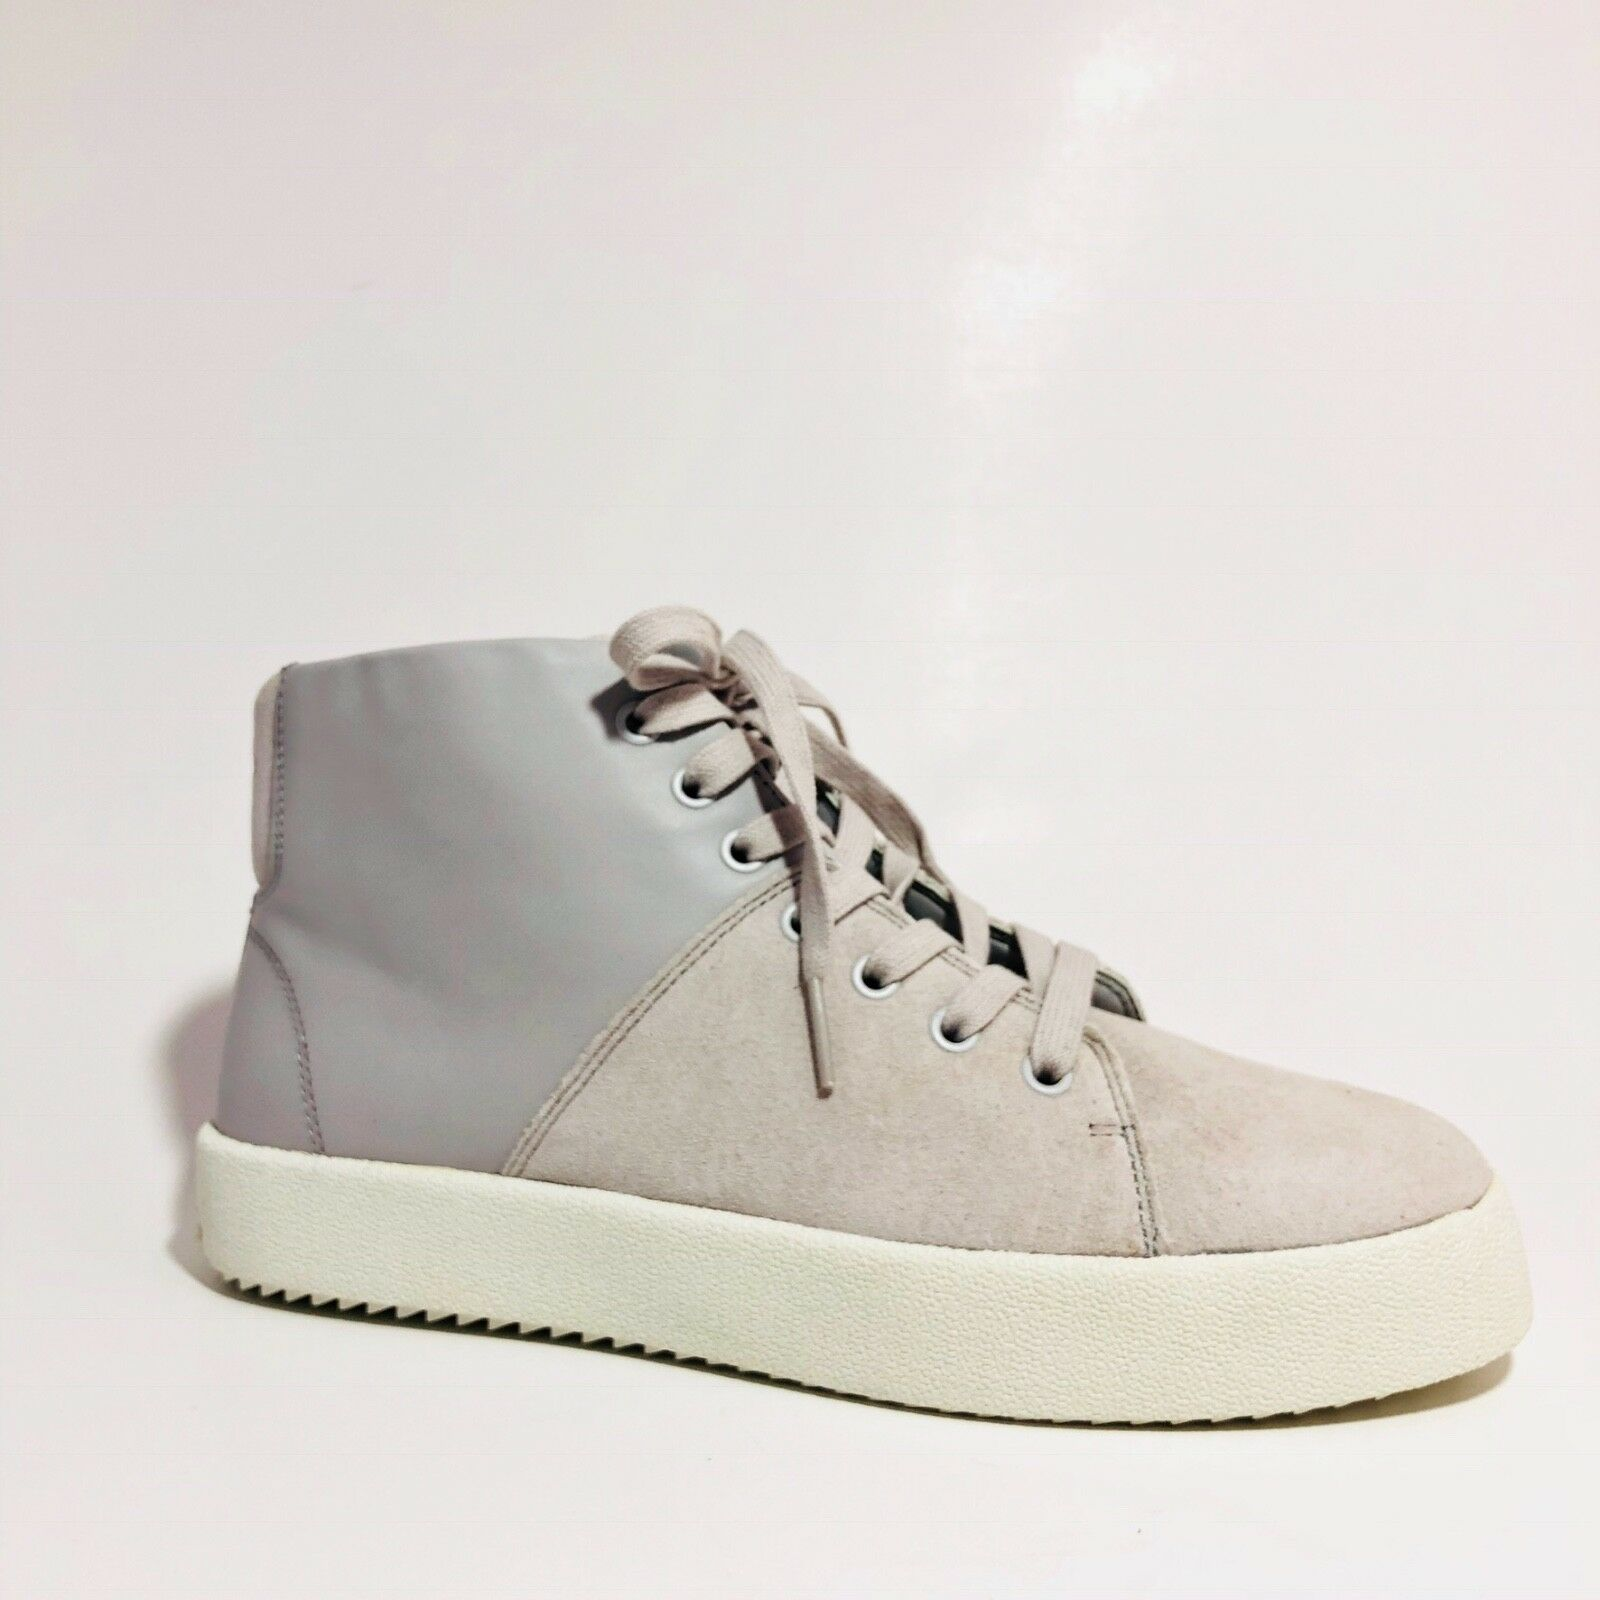 Kendall + Kylie Dylan Light 2 Leder Farbe Block Light Dylan Gray High Top Sneaker sz 9.5 032fba